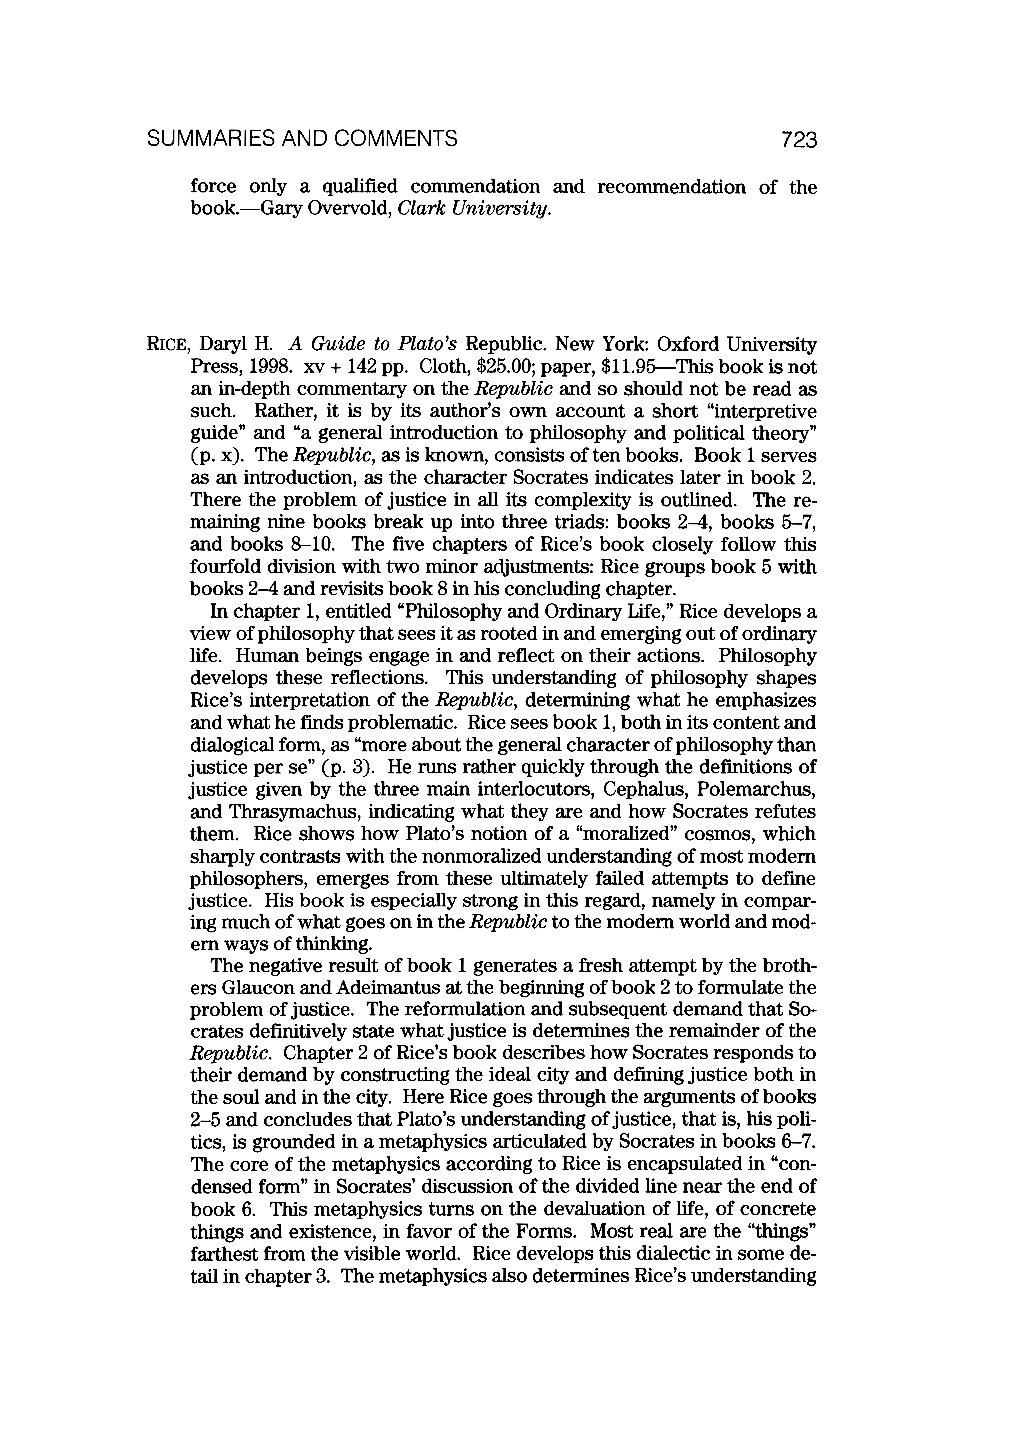 understanding the challenges of glaucon and adeimantus in platos republic essay A guide to plato's republic r j rowan department of glaucon and adeimantus this work by bc civil liberties association is licensed under a.